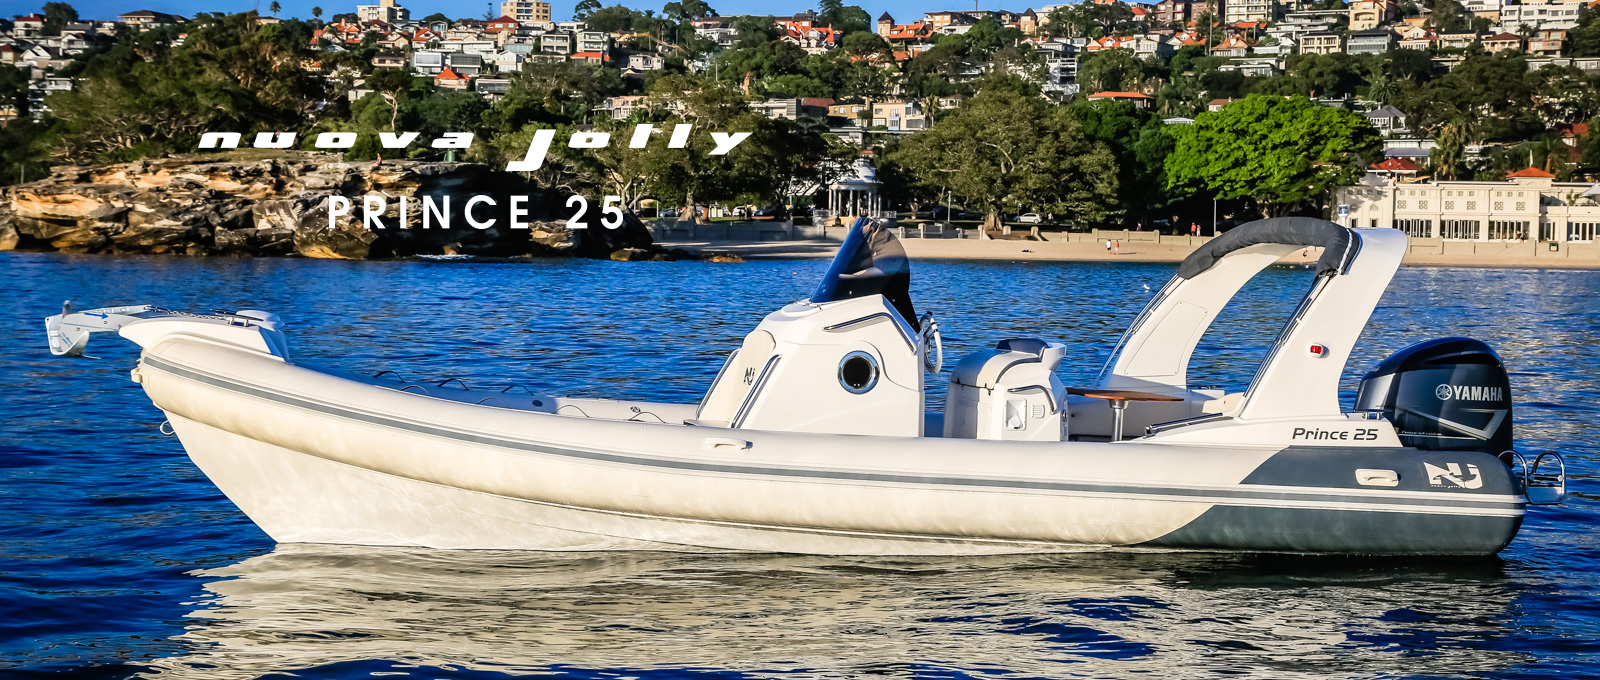 Boutique Boats Website | Luxury designer boats from around